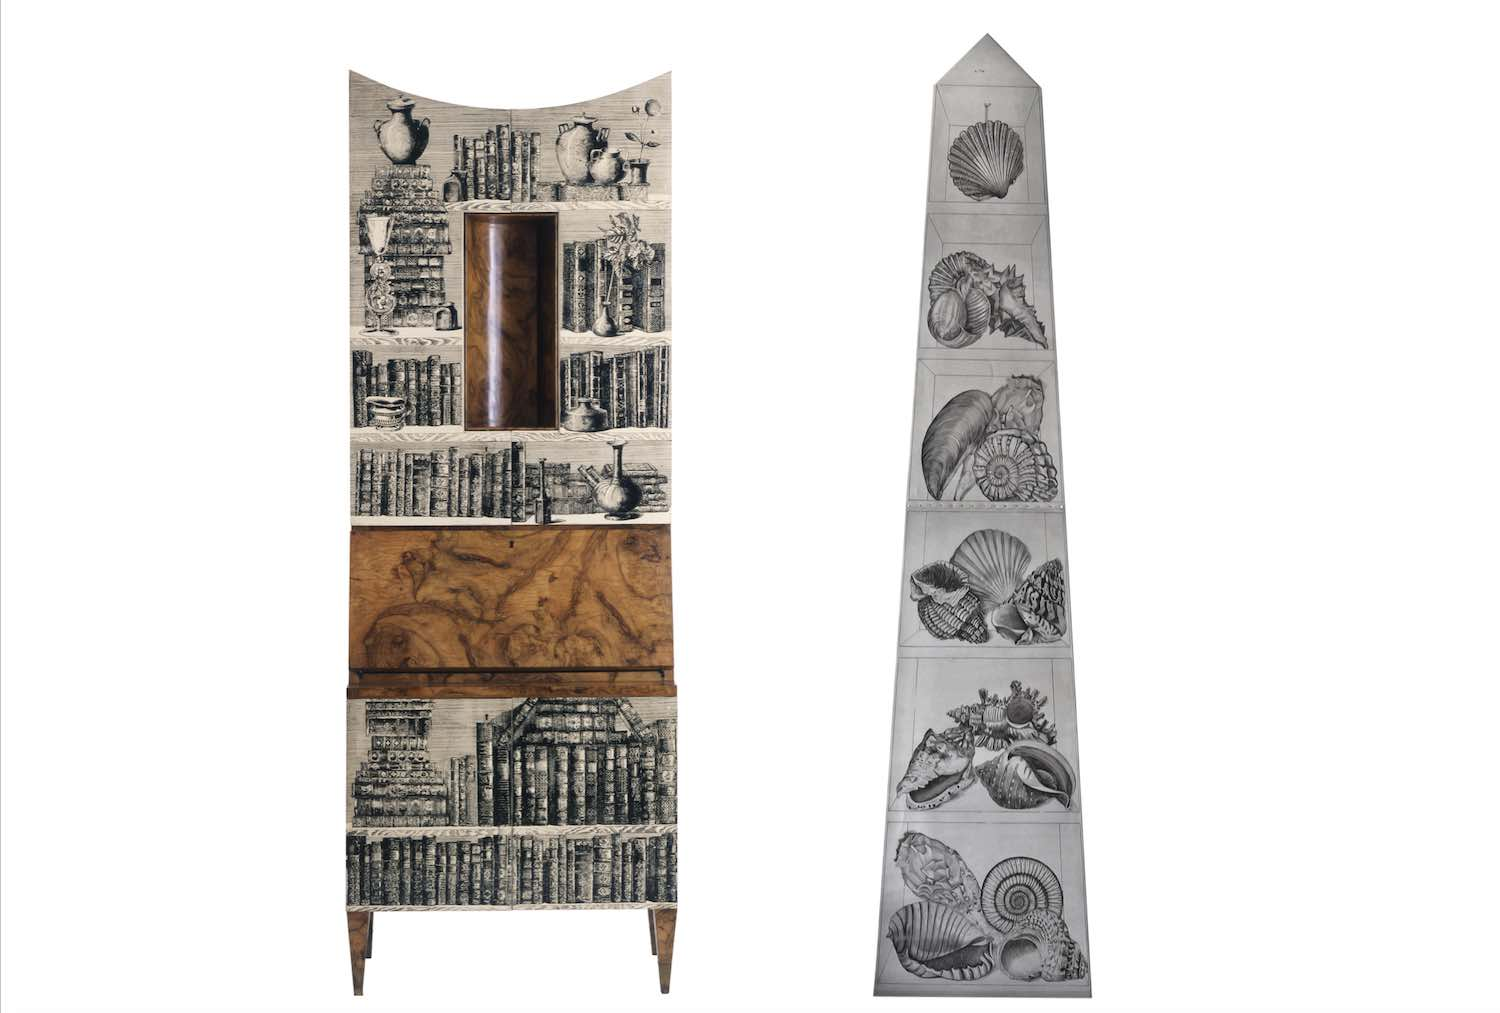 Trumò libri and Litomatrice obelisk and wall lamp - Courtesy of Fornasetti.